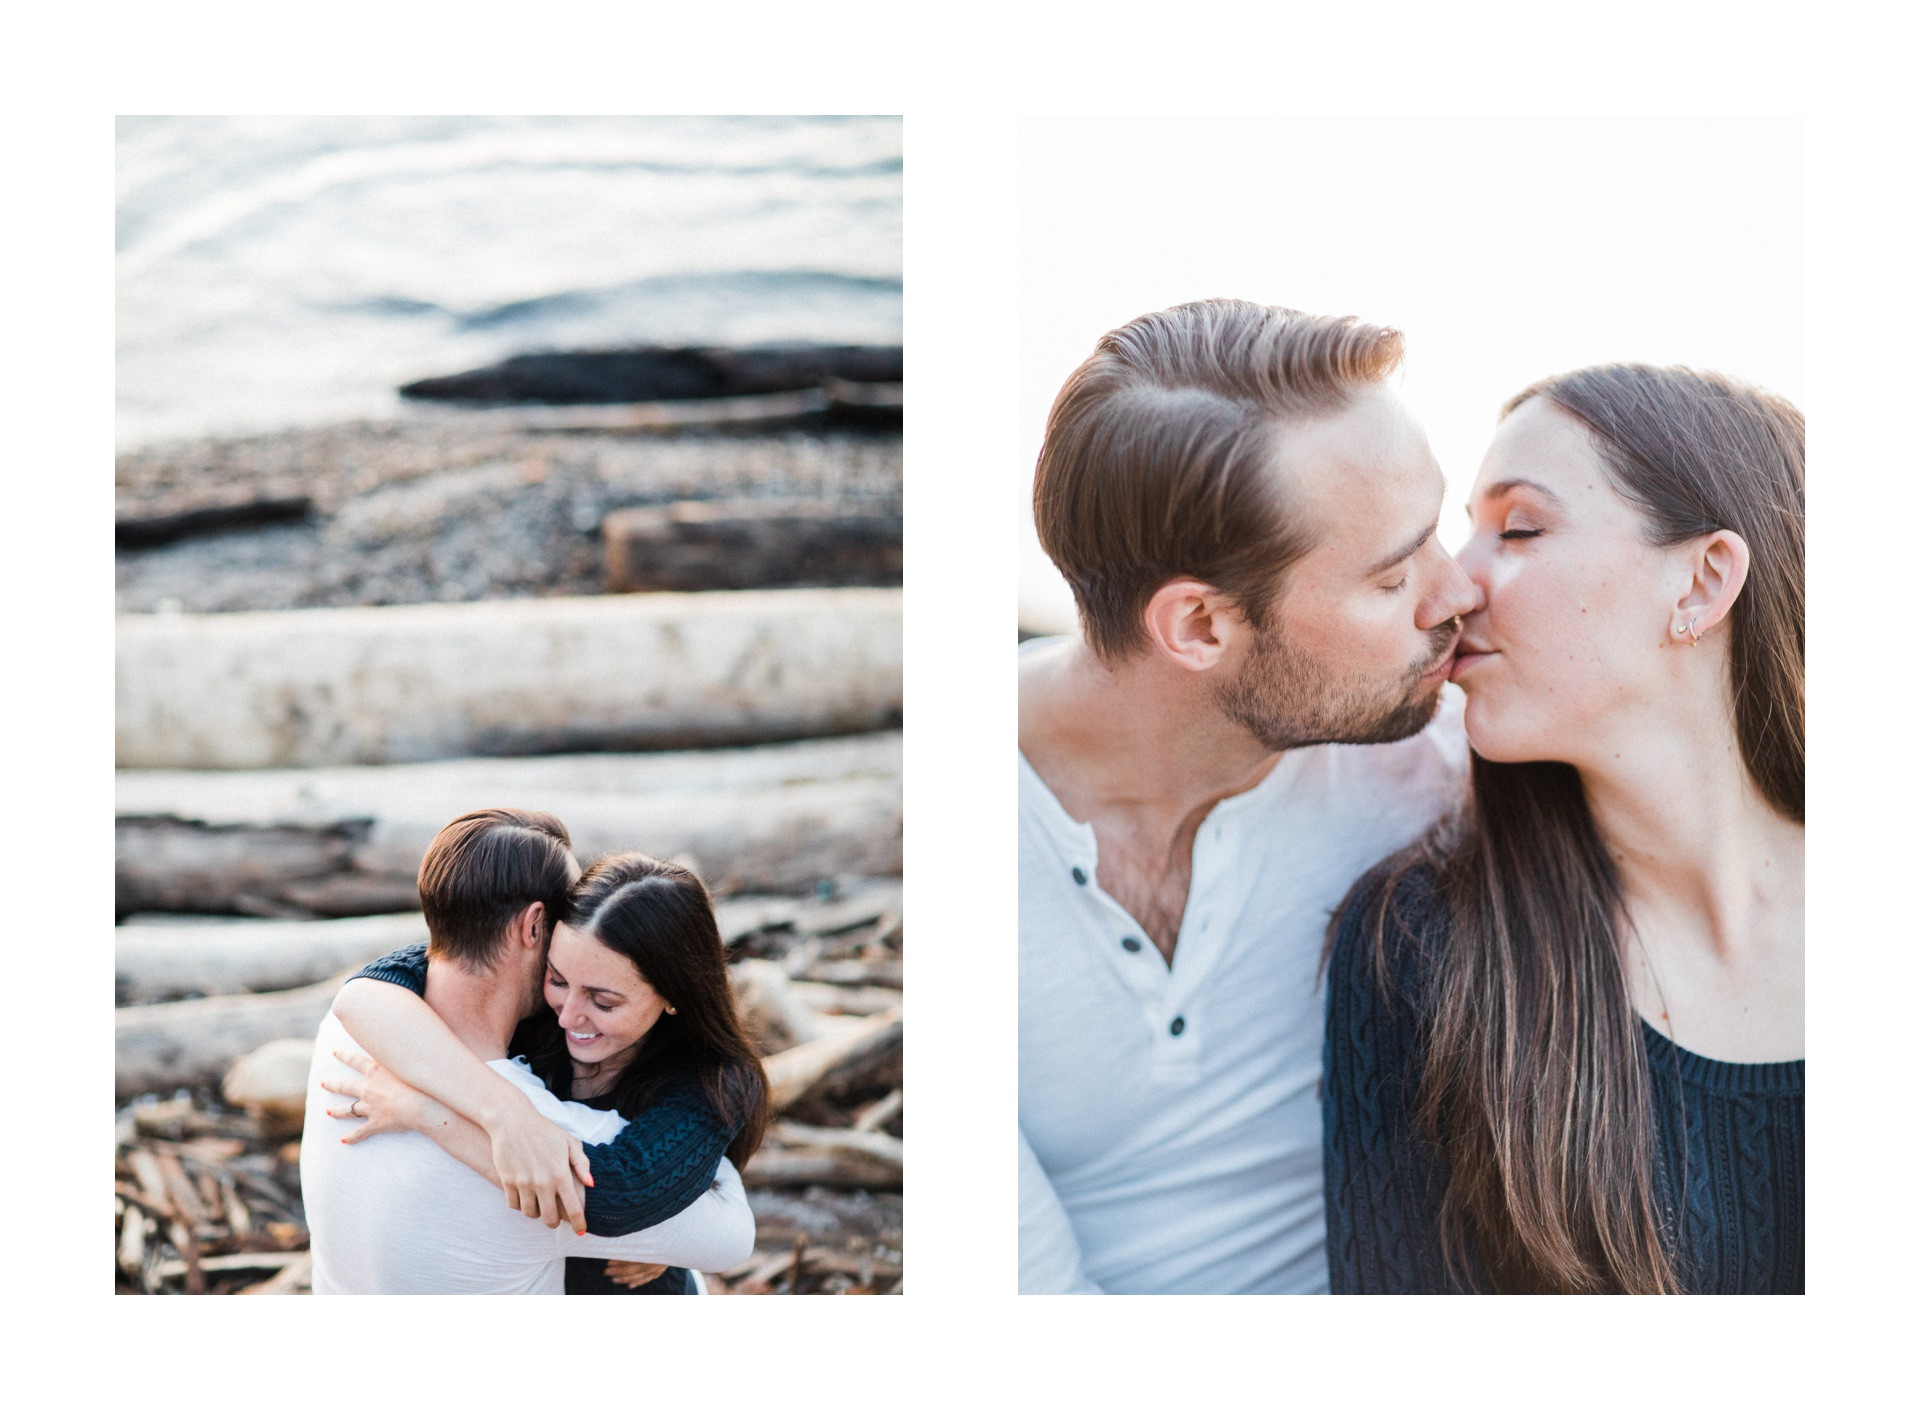 Cleveland Weding and Engagement Photographer 29.jpg